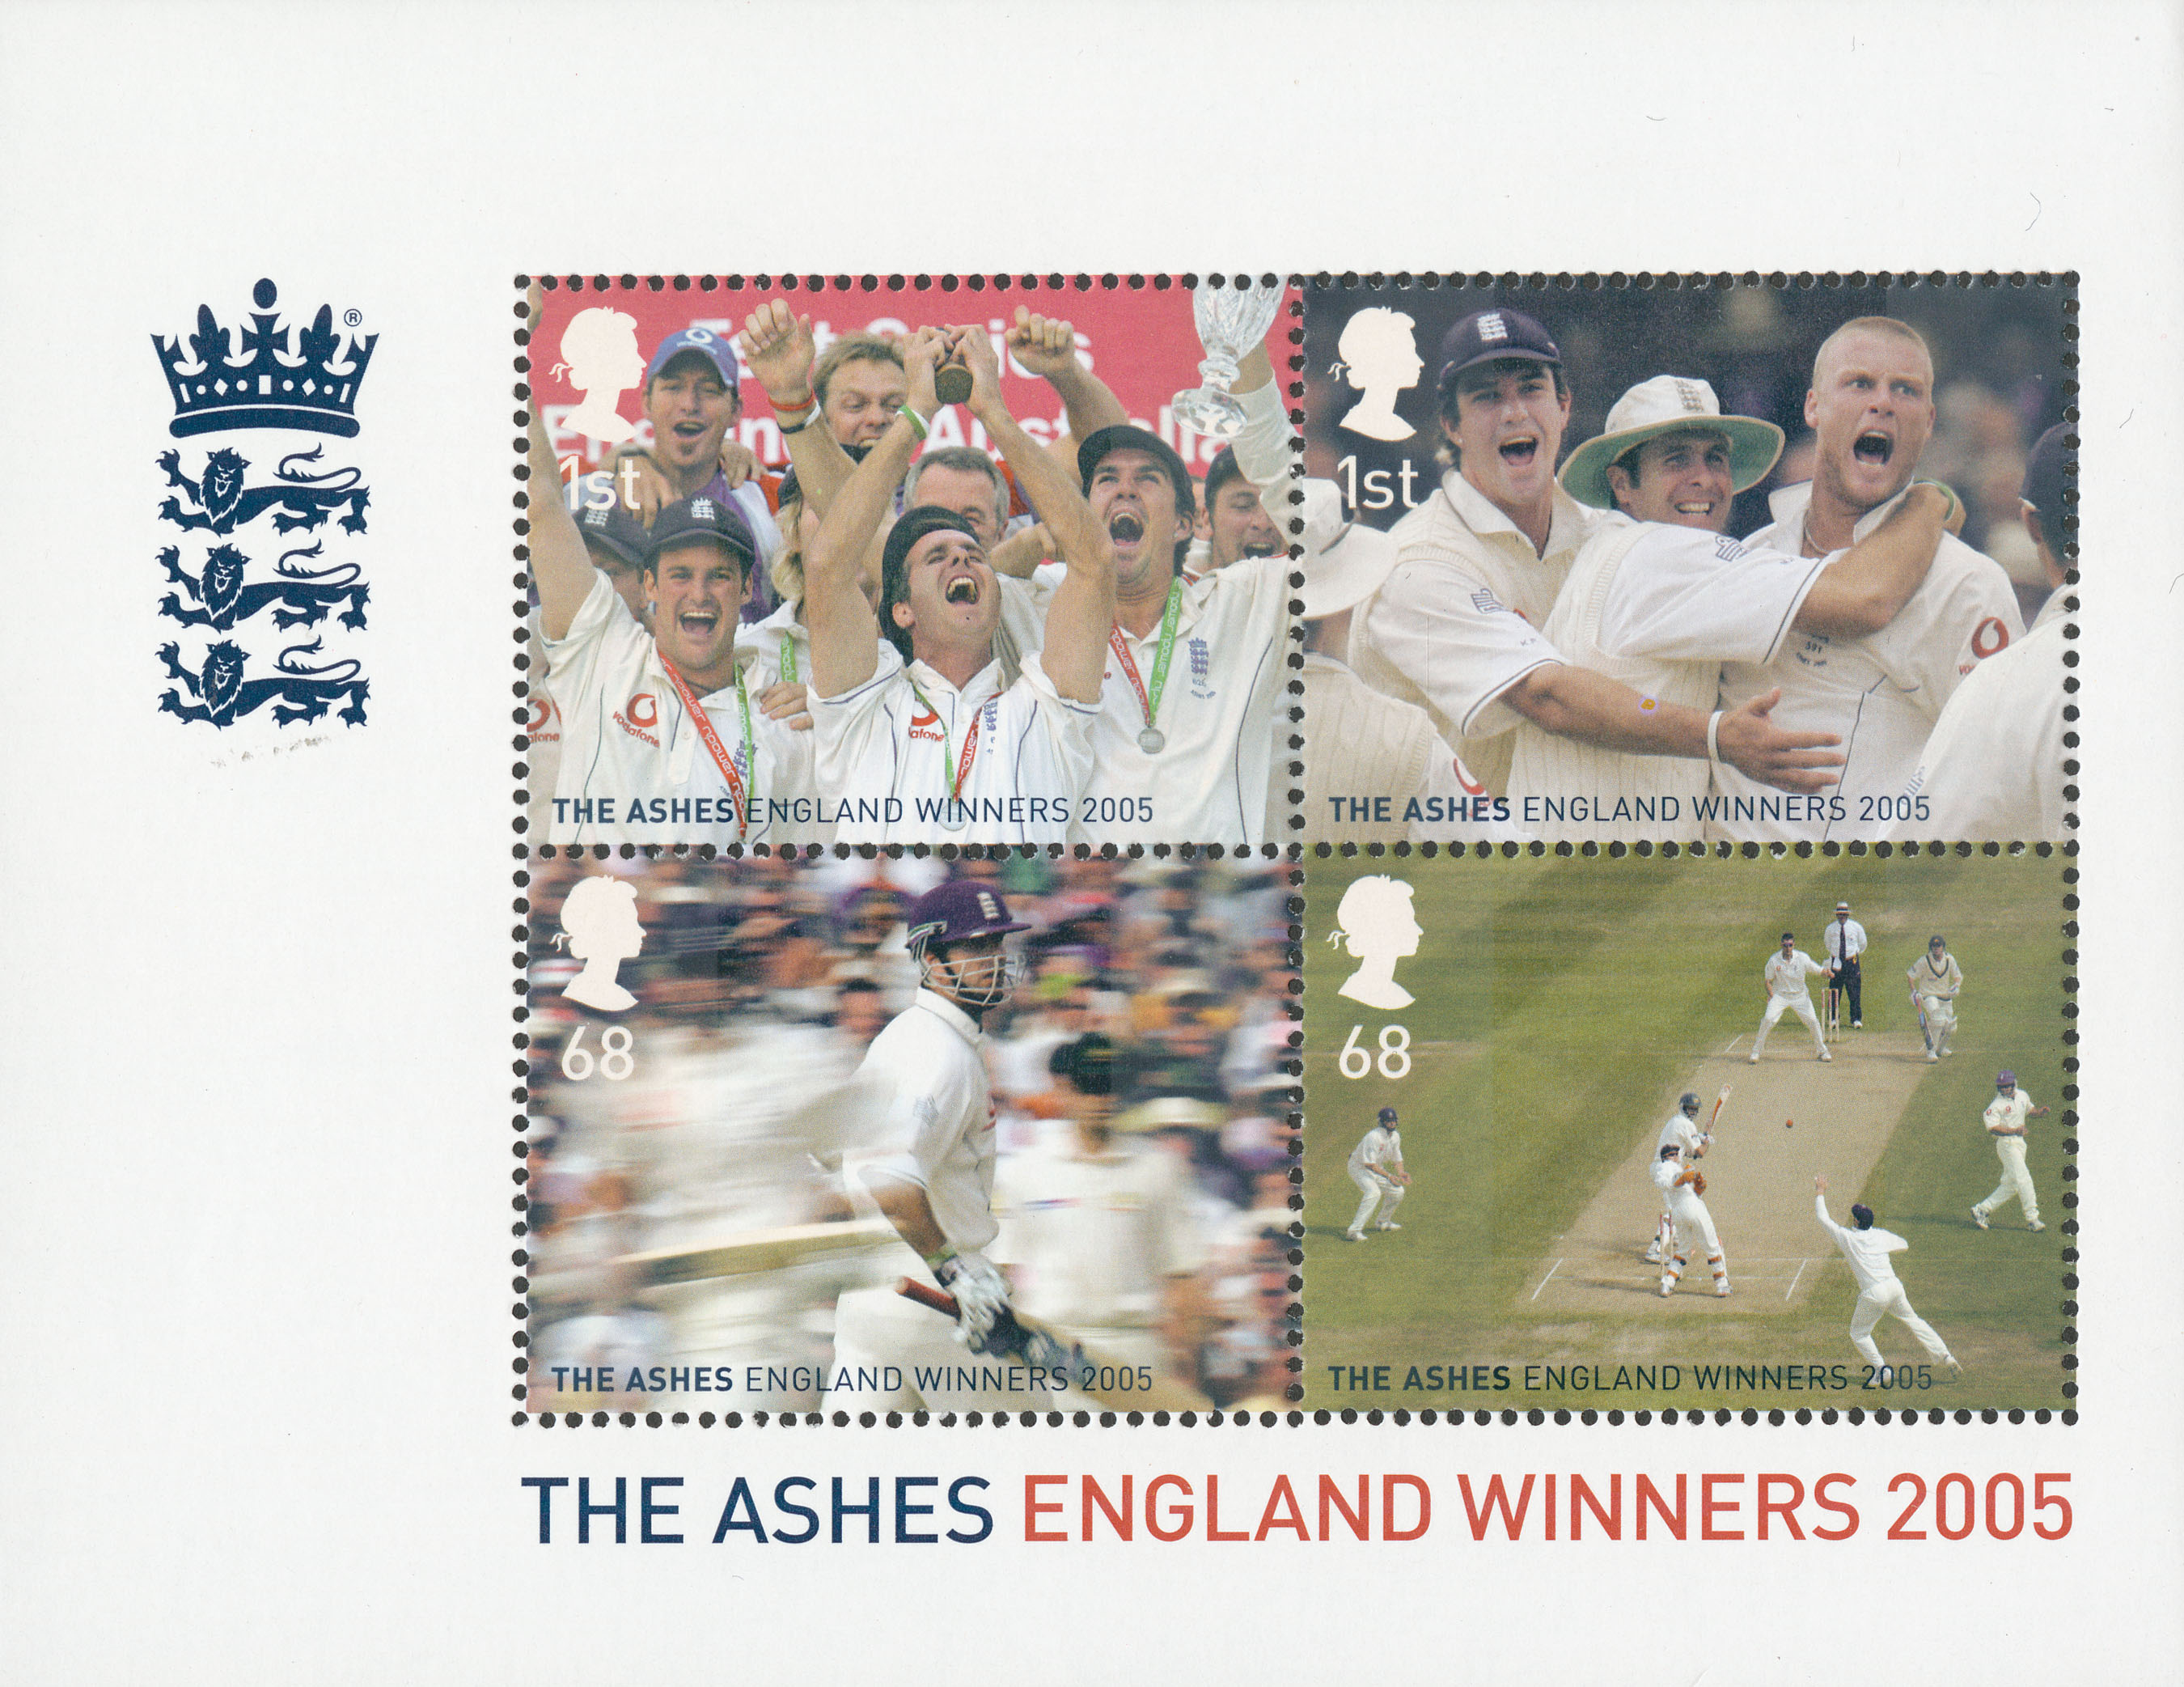 A miniature sheet featuring four stamps that show photographs from the Ashes tournament and an image of the team holding the cup.